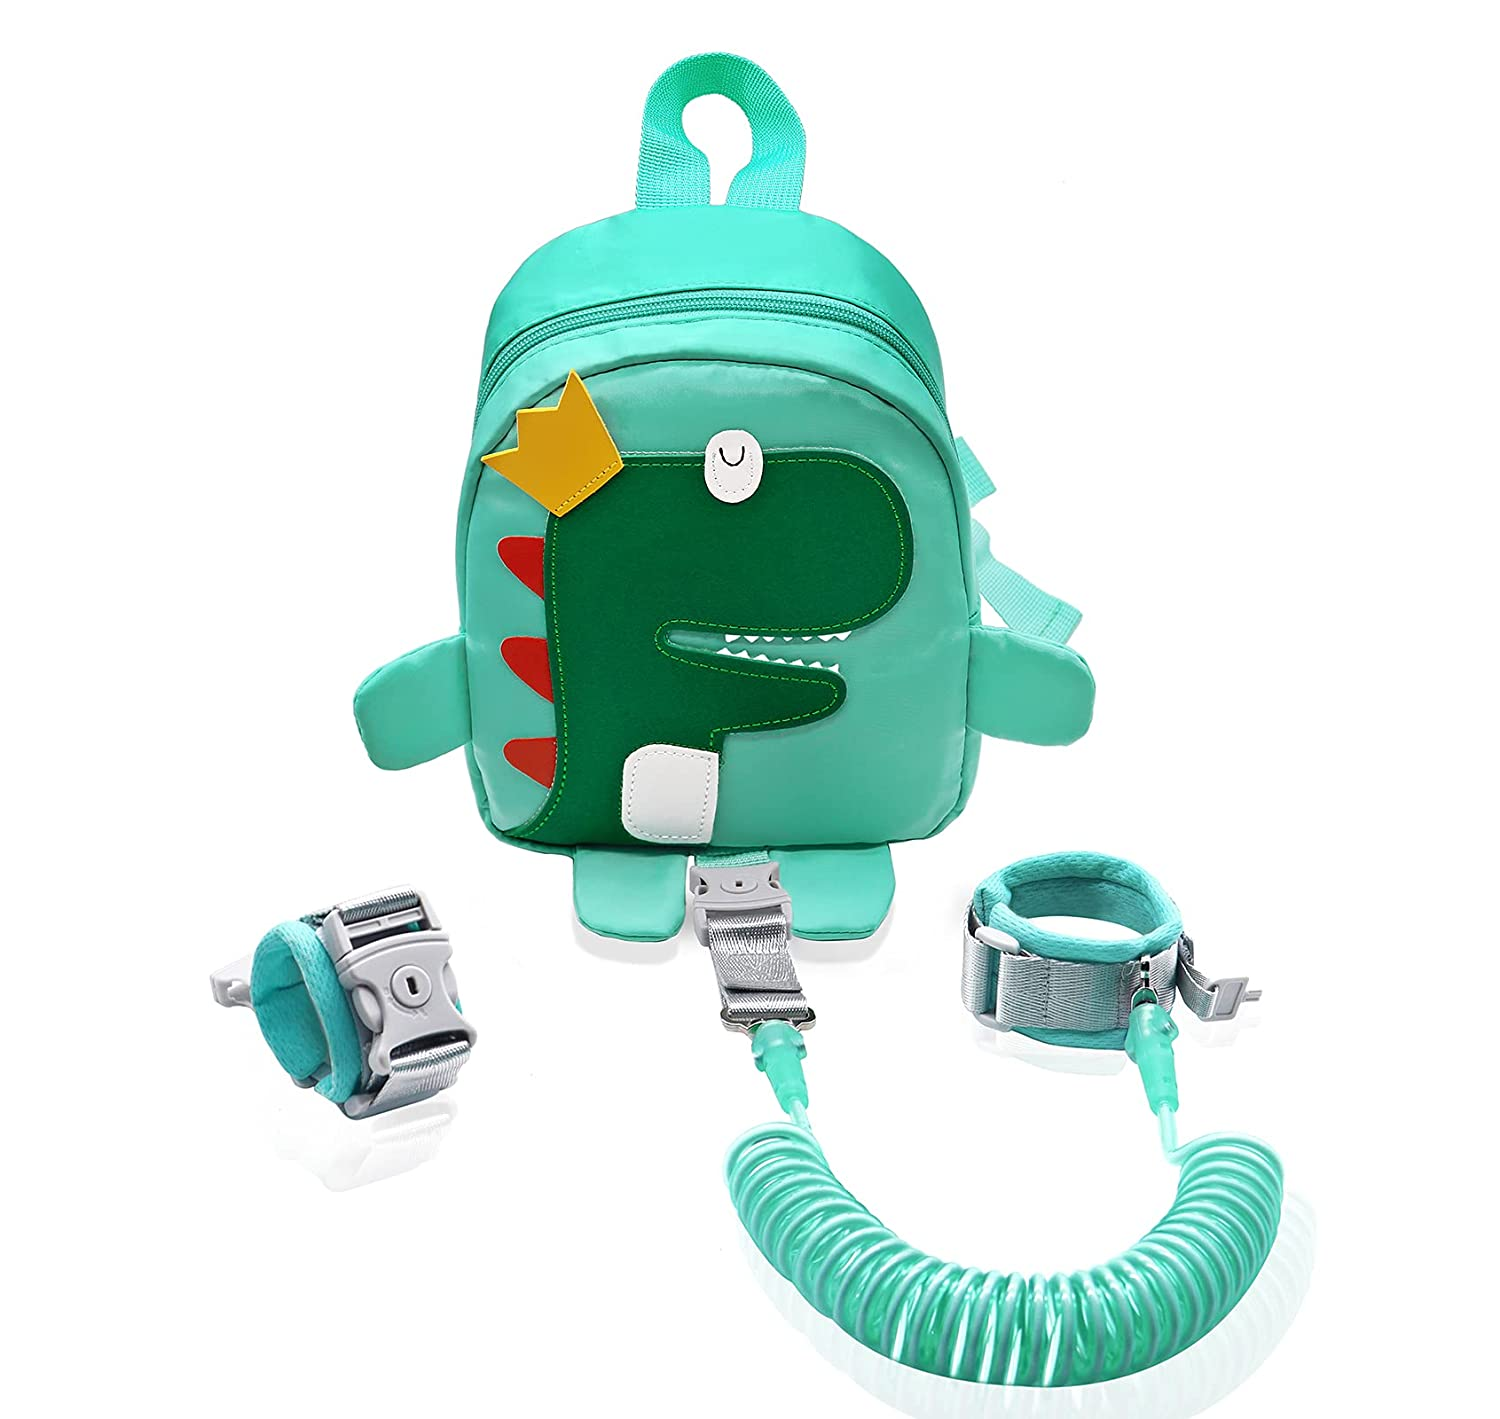 Backpack Leash for Toddlers - Dinosaur Kids Backpack Harness with Leash for 1-5 Years Old Boys Child Backpack Leash